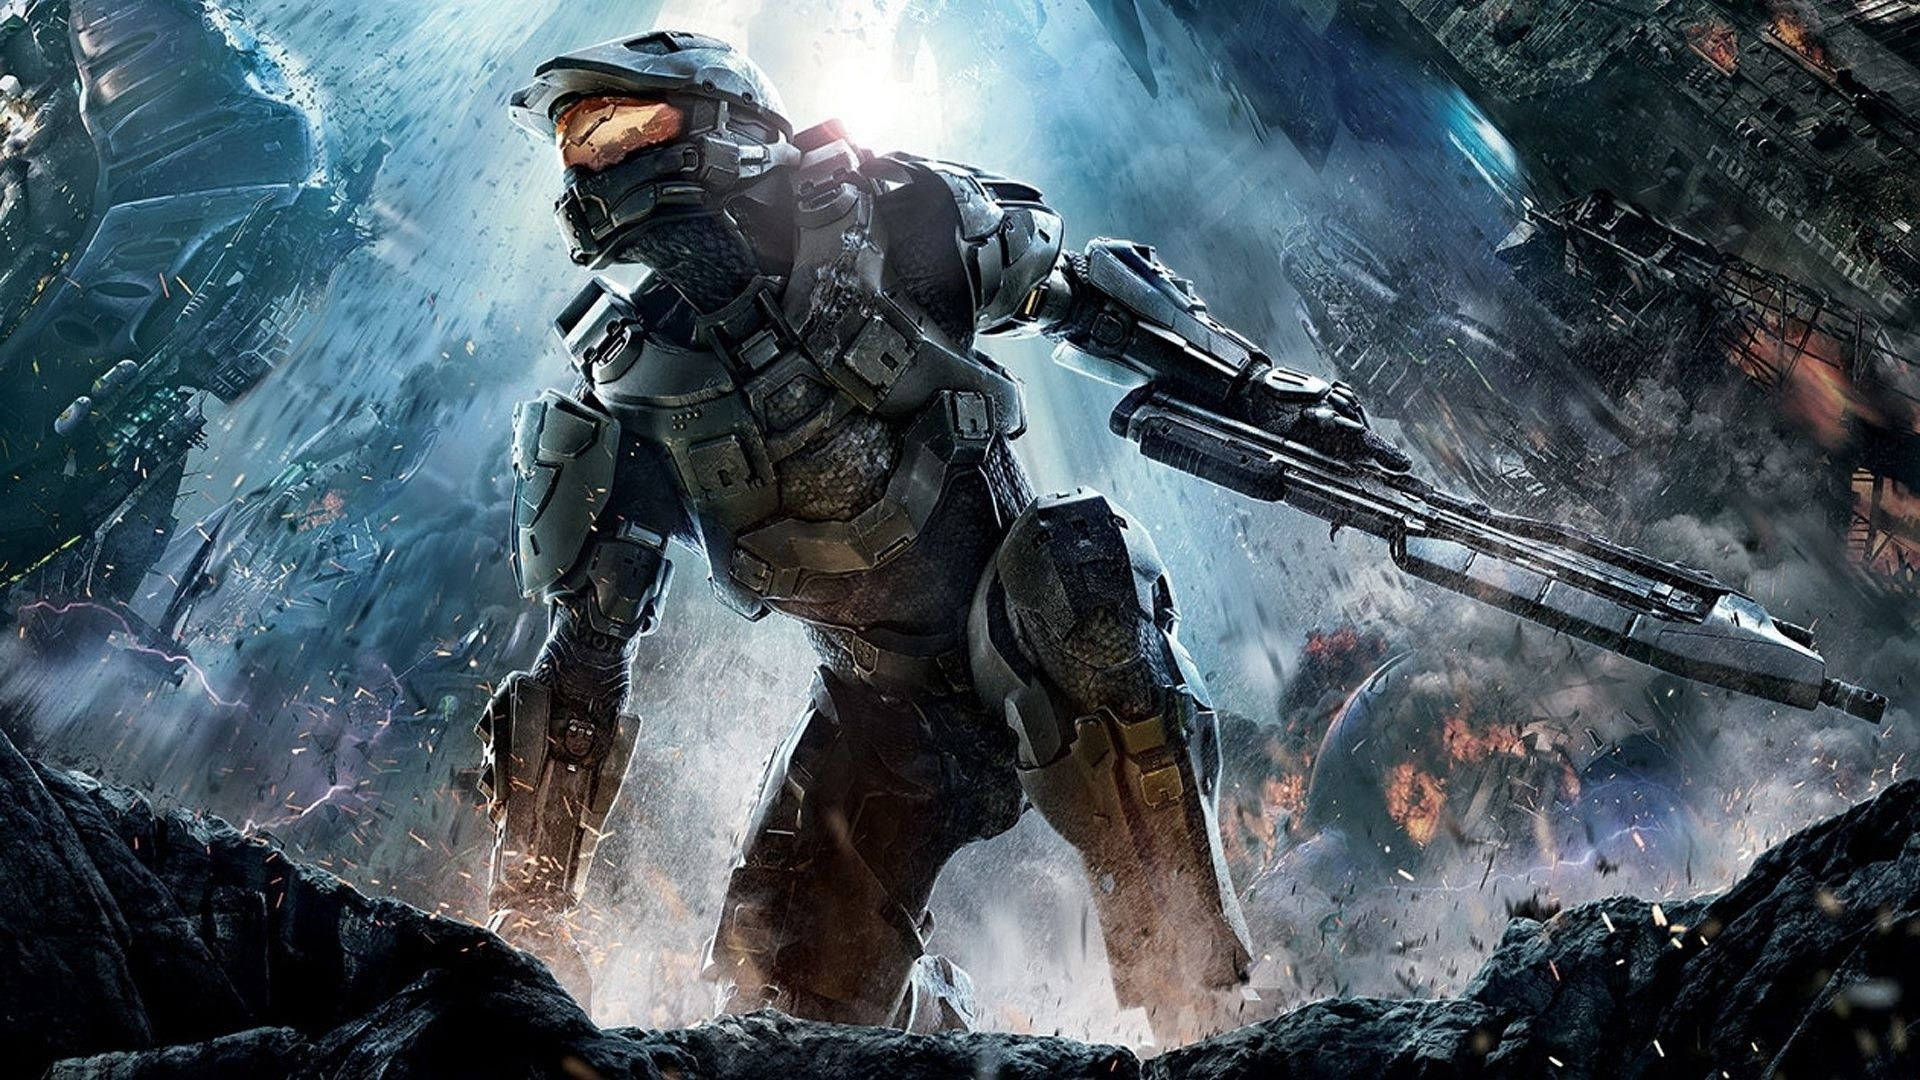 Backgrounds In High Quality: Halo 4 by Leesa Bednar, 28/04/2014